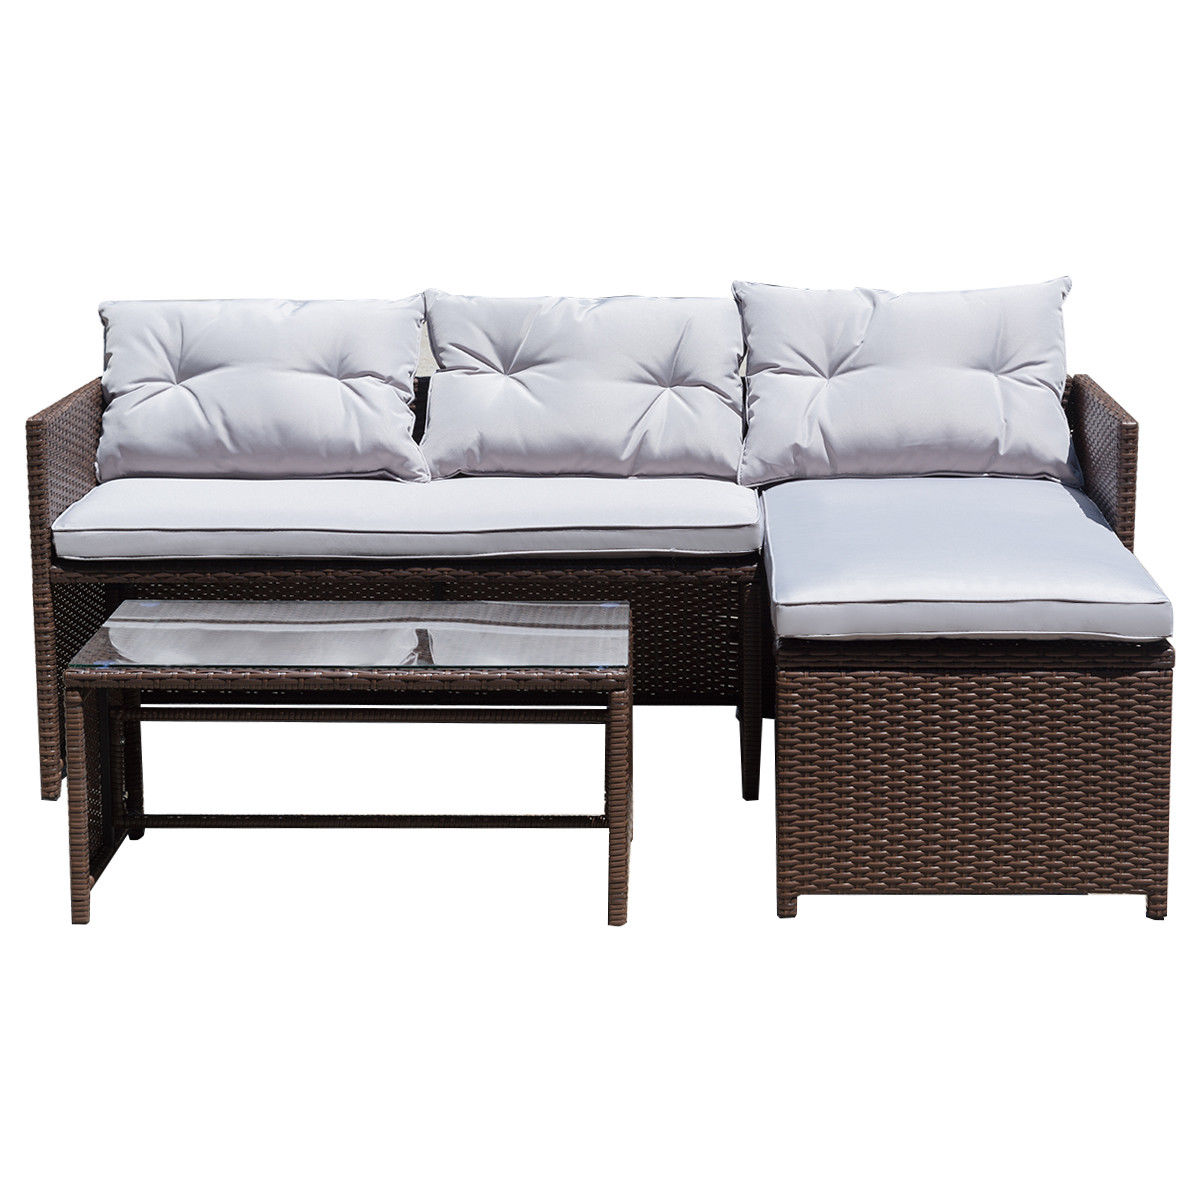 Gymax 3PC Rattan Furniture Set Outdoor Patio Couch Sofa Wicker Set